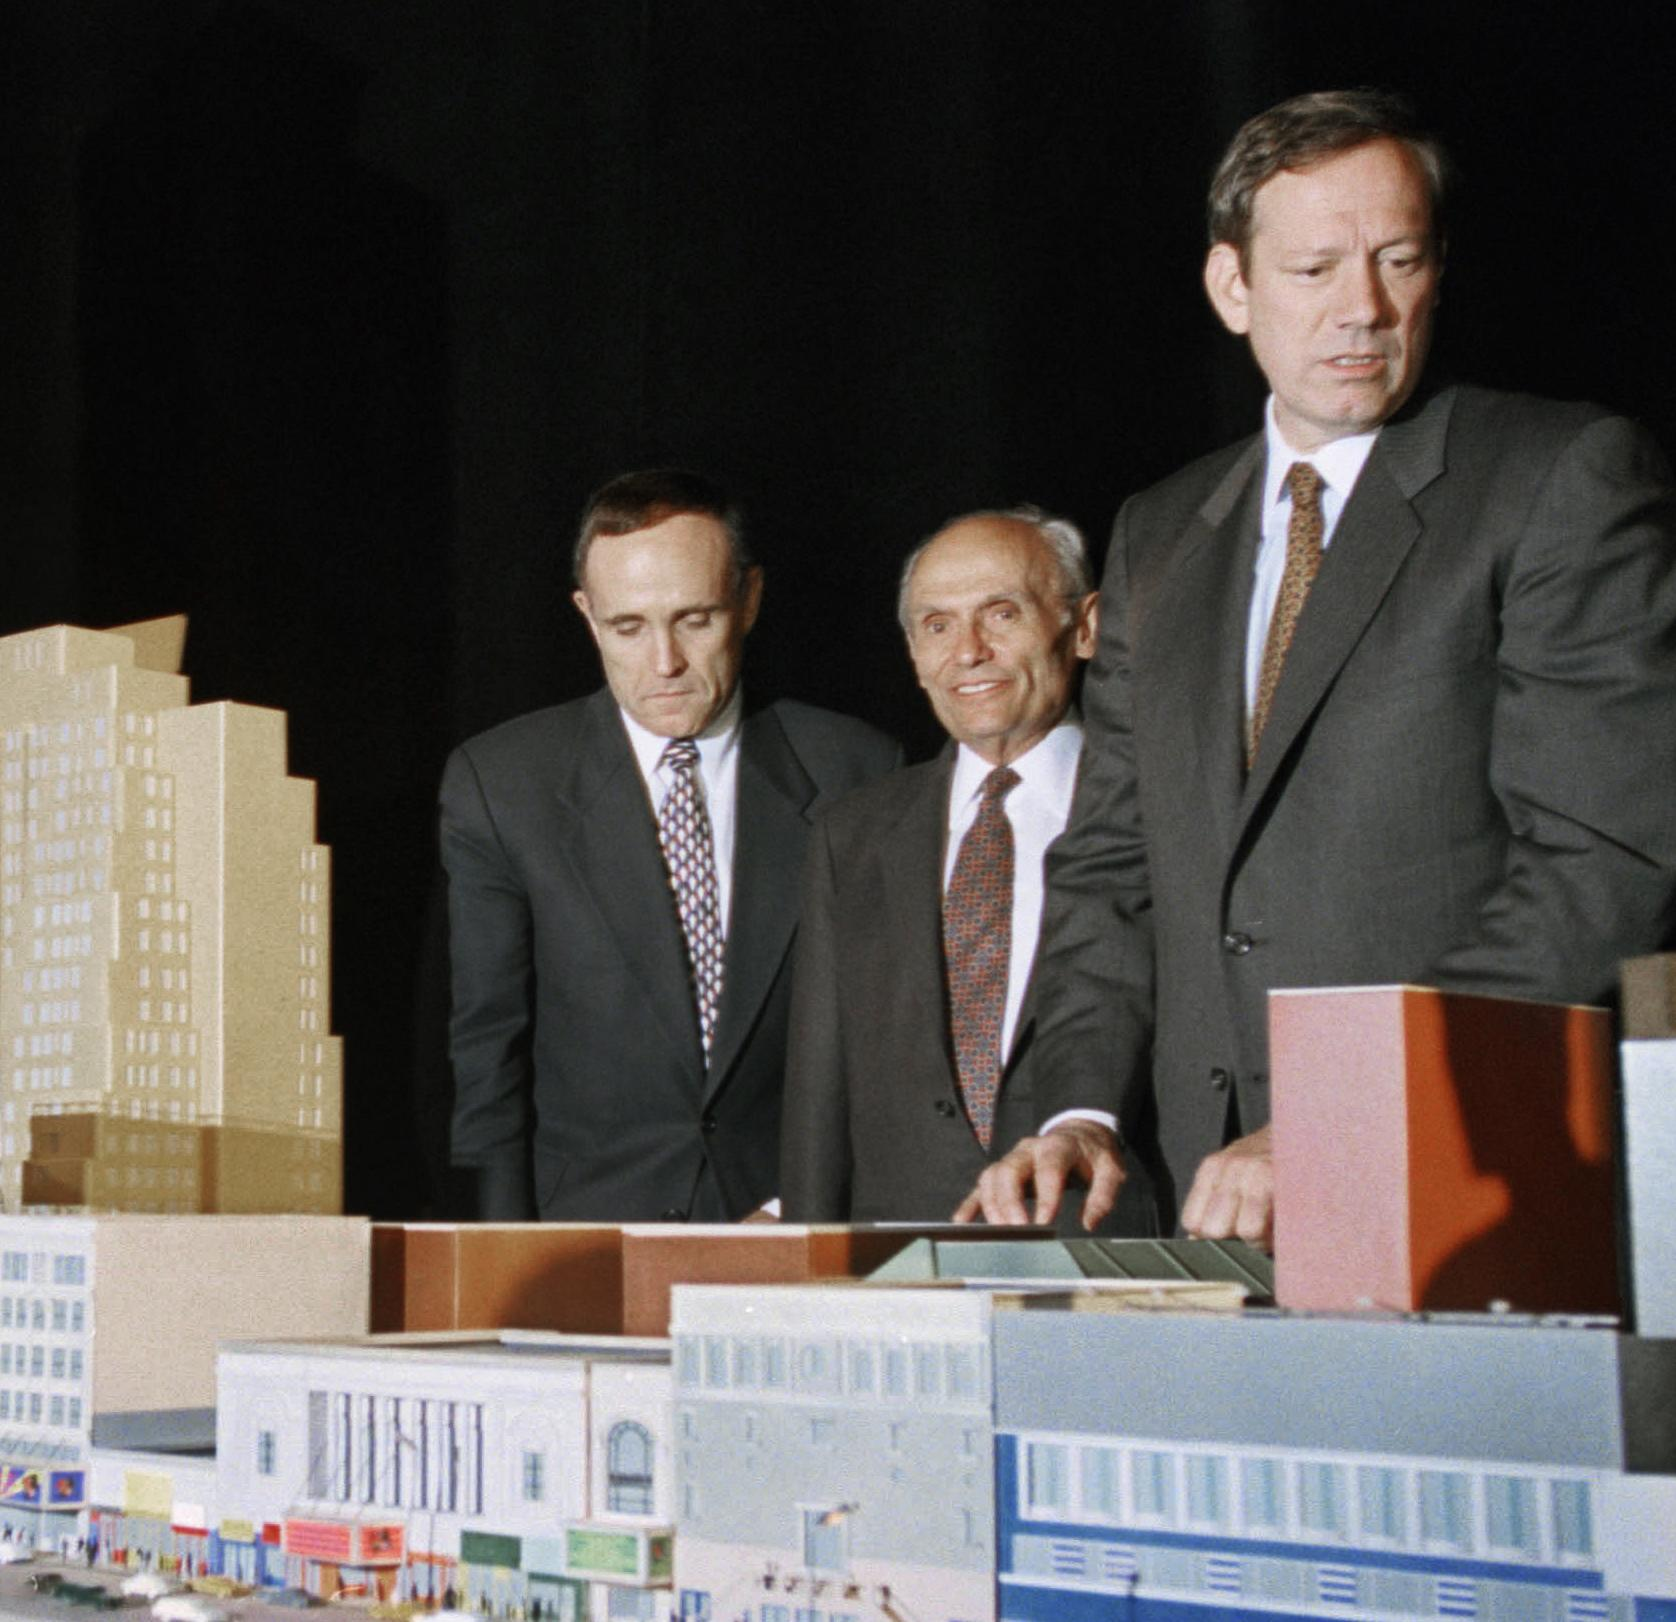 New York real estate developer John Tishman dies at age 90